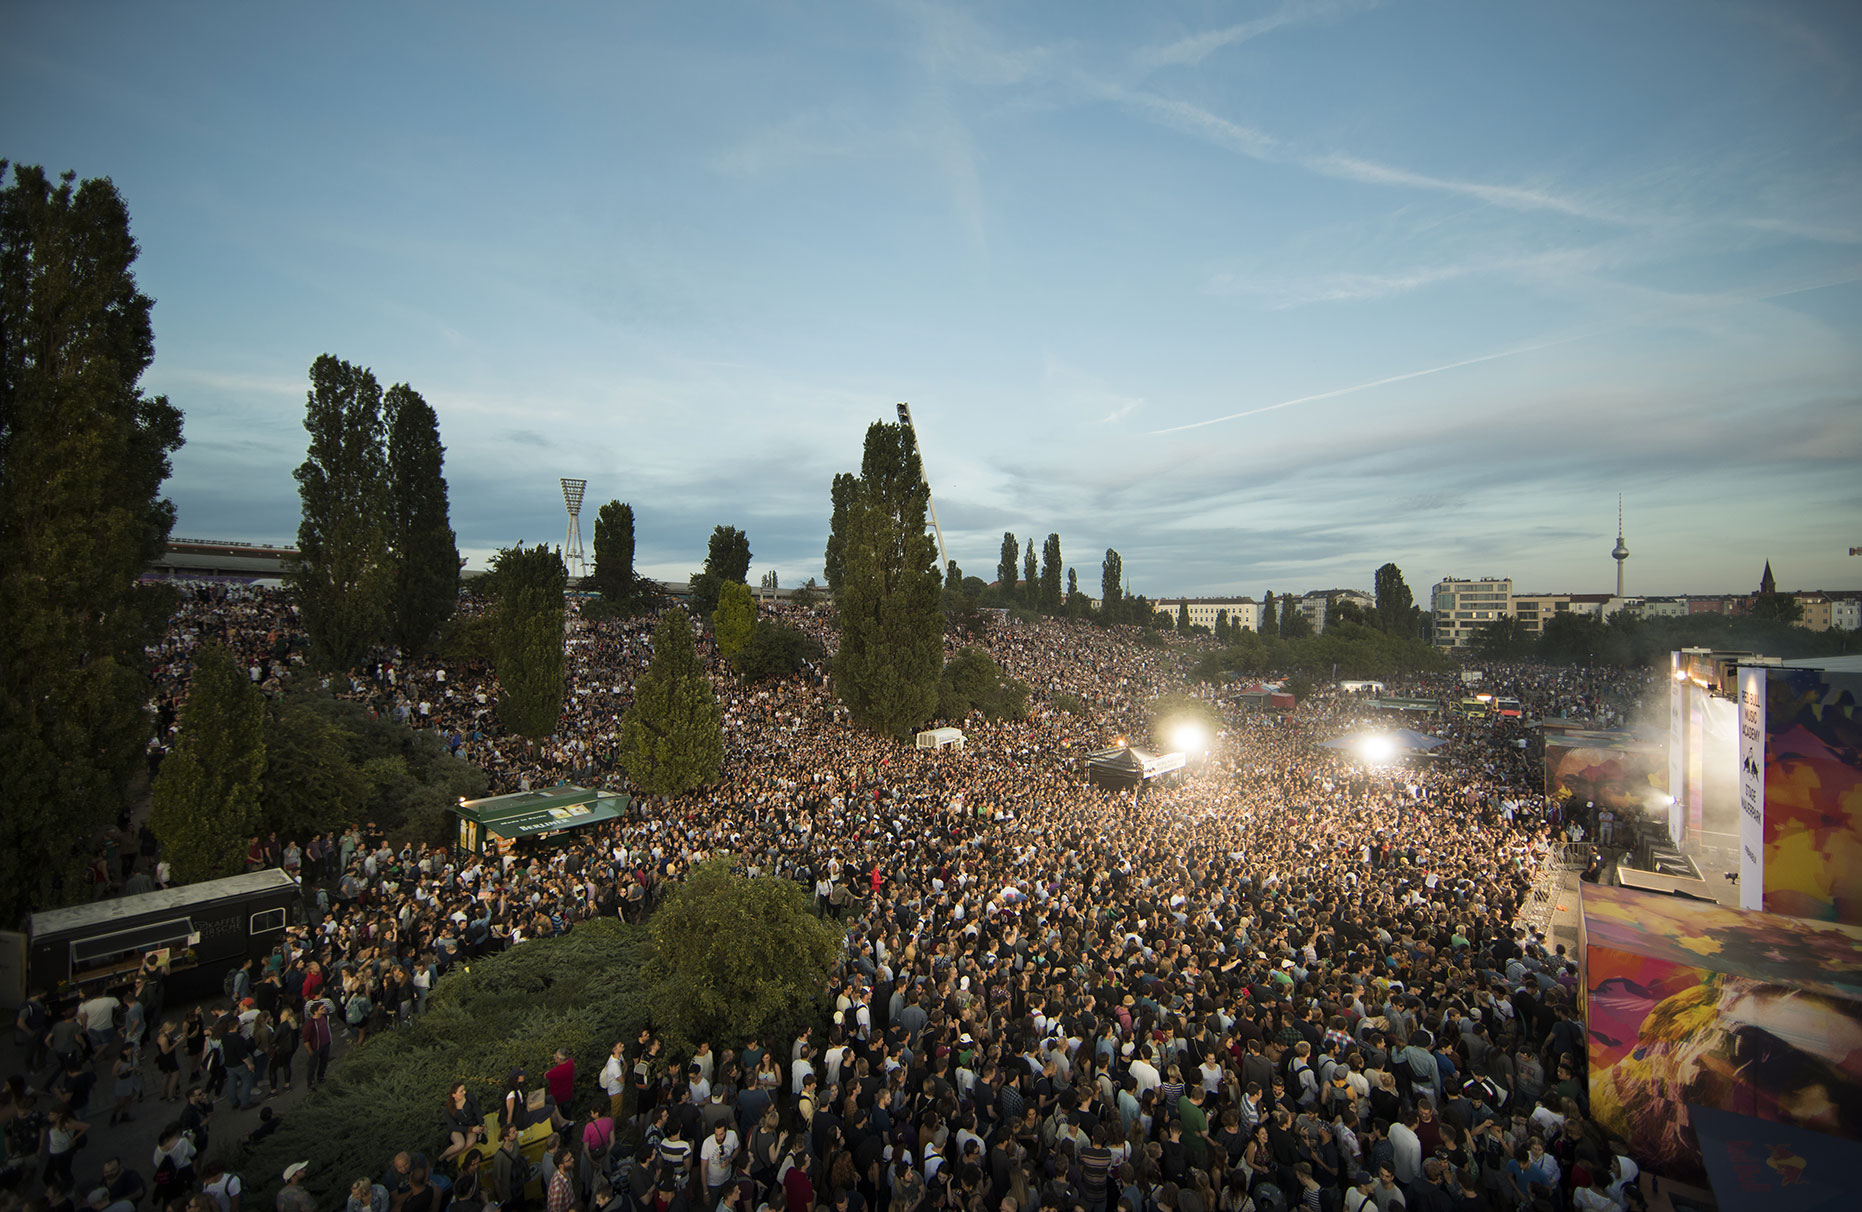 © Dirk Mathesius, Red Bull Music Academy Stage at Mauerpark in Berlin, client Red Bull, Germany